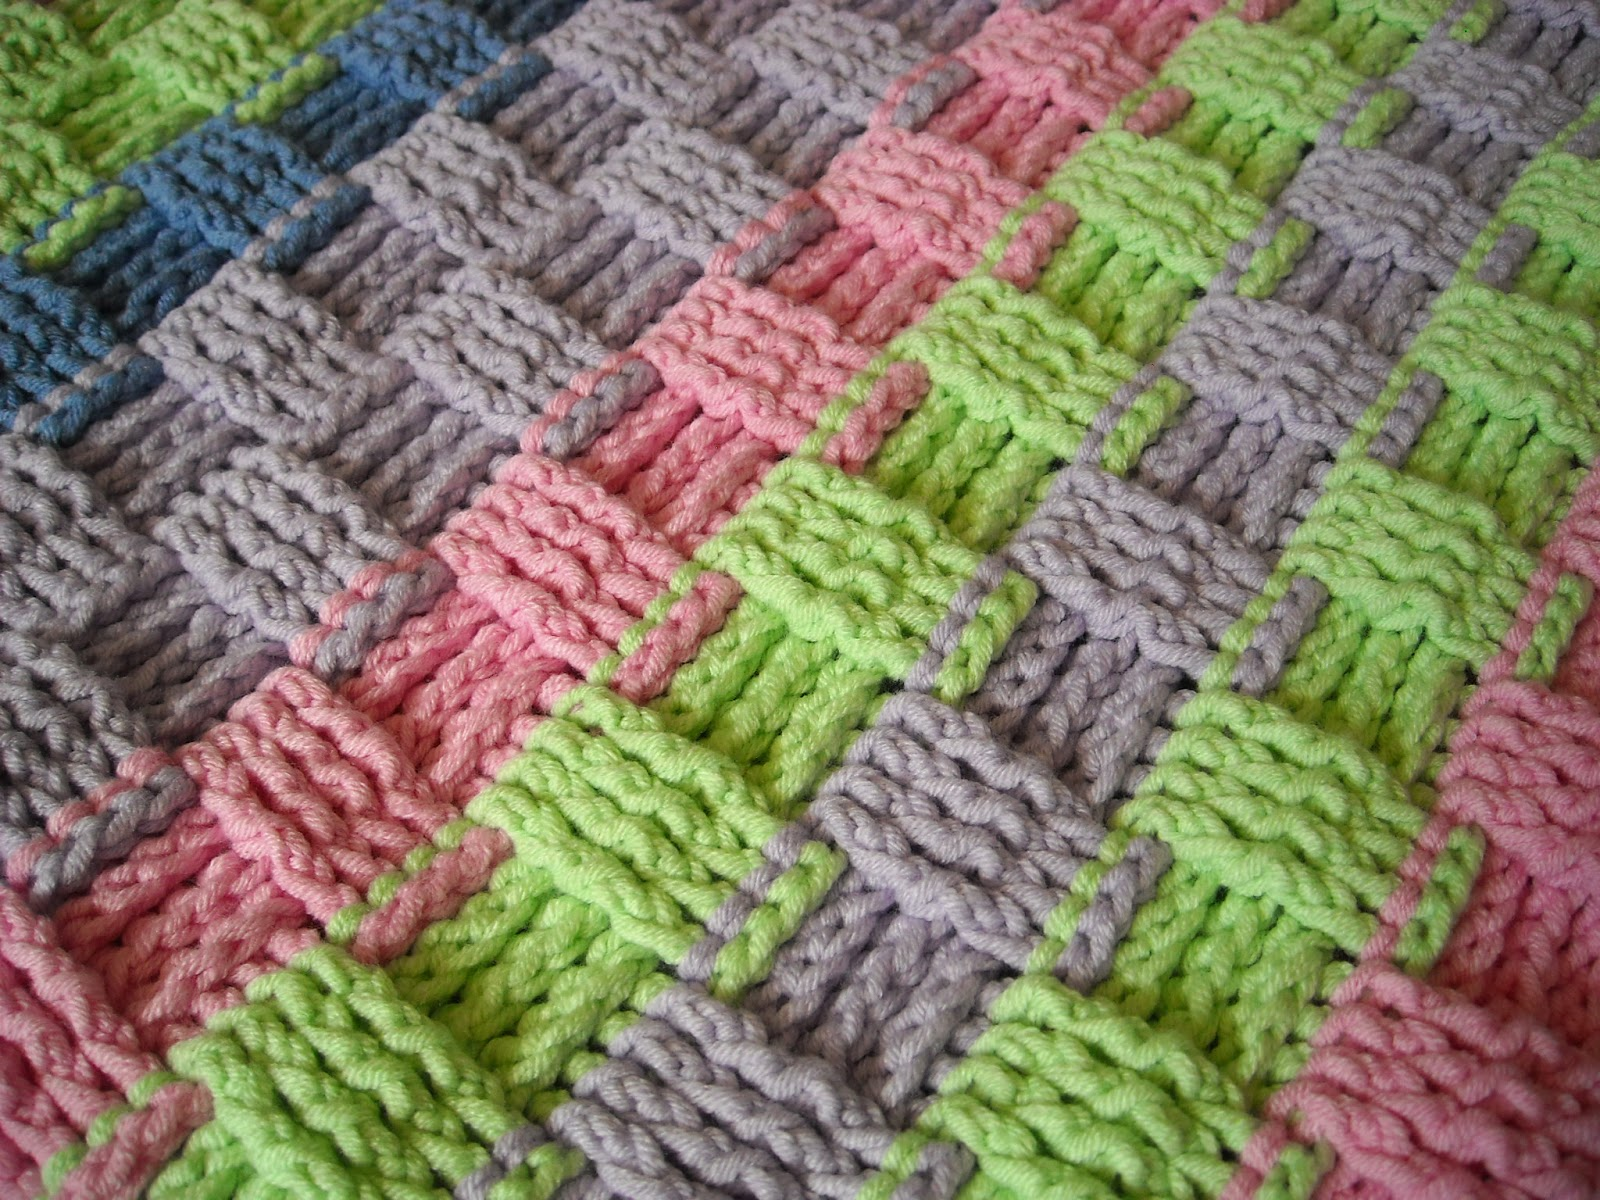 Crochet Basket Weave Afghan Baby Blanket Pattern And Tutorial : Everything Springer A to Z: Introducing My Etsy Shop ...